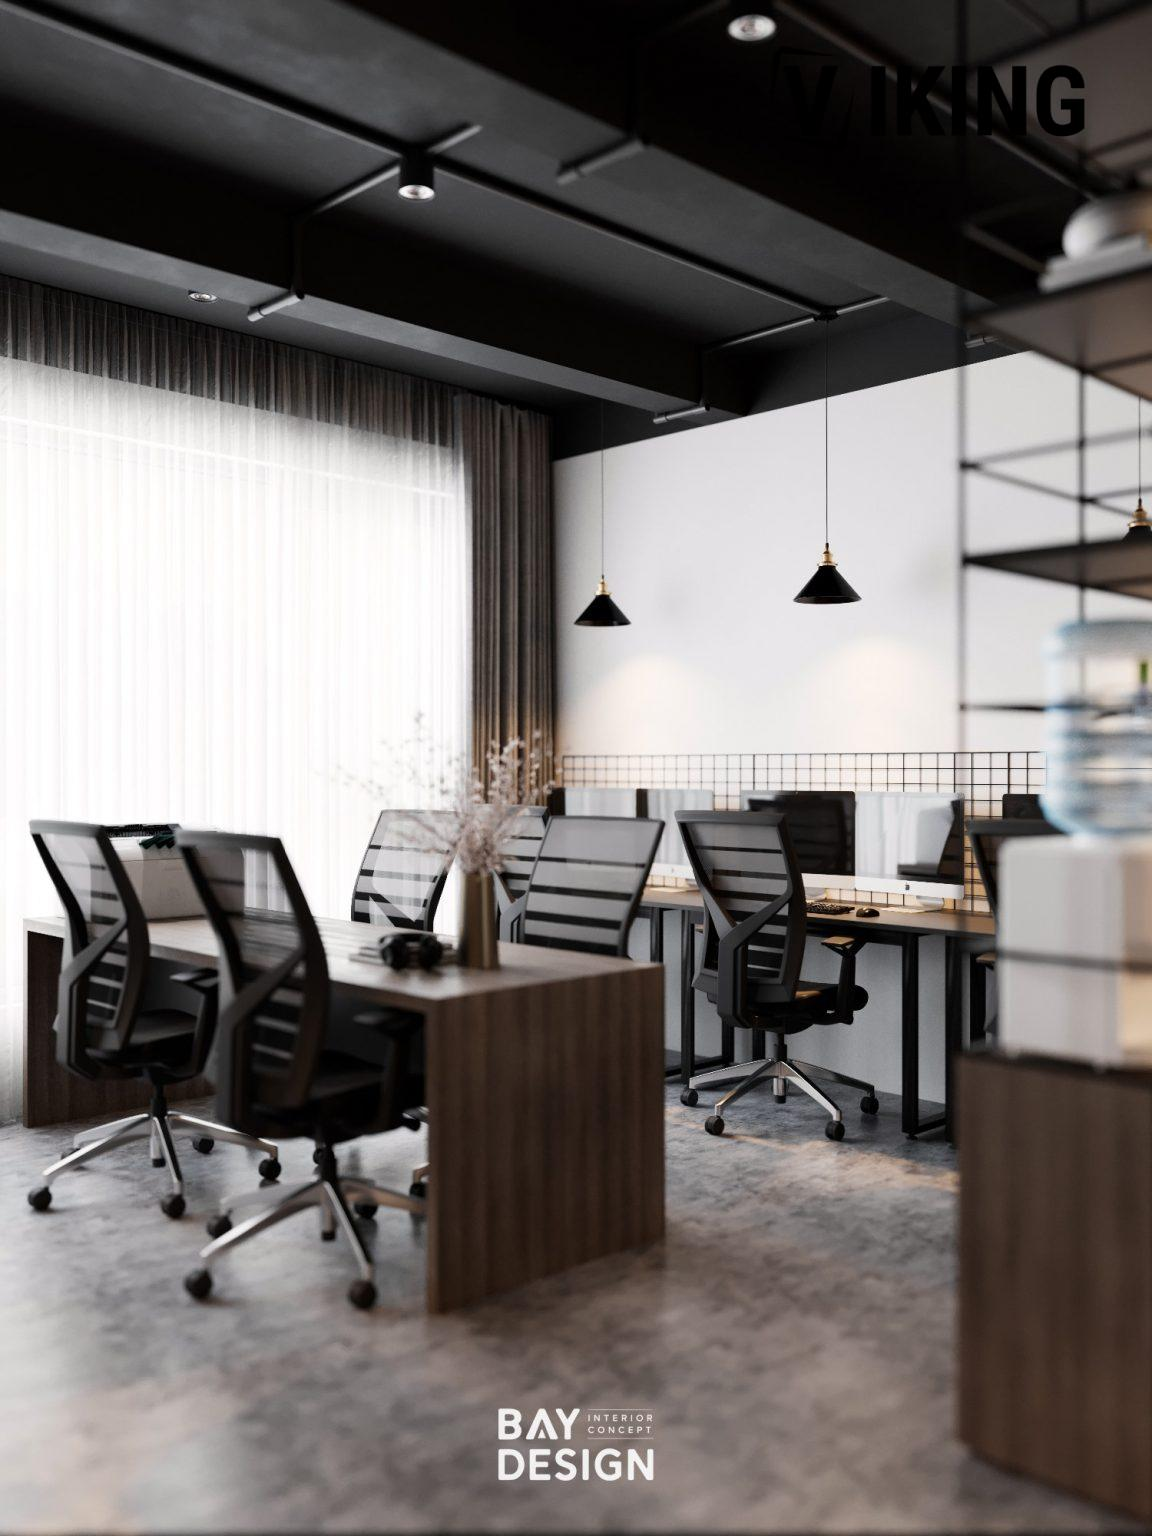 4377.Officeroom Scenes 3dsmax File free download by Duc Nam 4 1152x1536 1